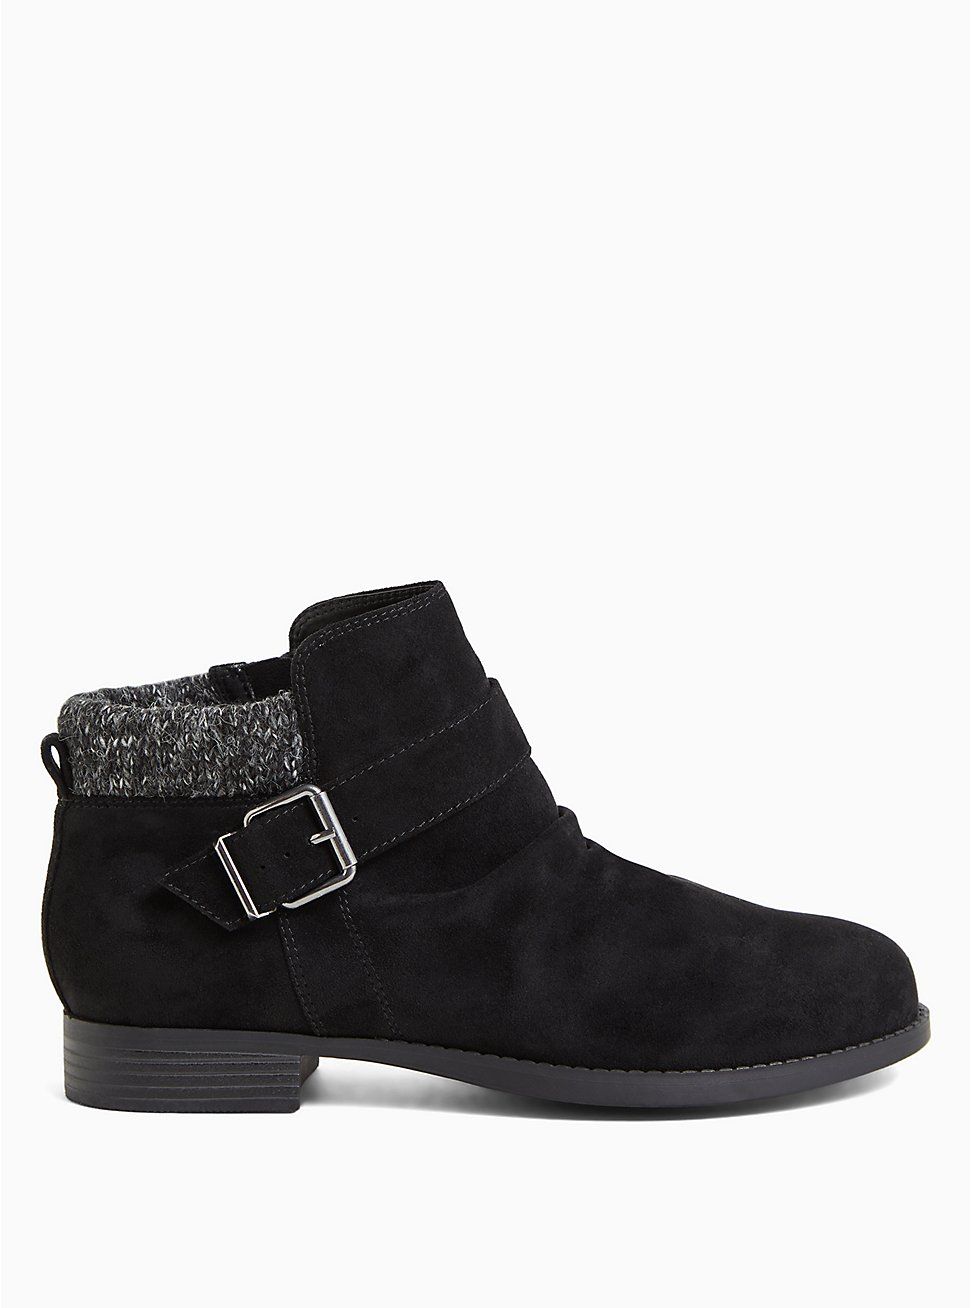 Black Faux Suede Sweater-Trimmed Buckle Ankle Bootie (WW), BLACK, hi-res